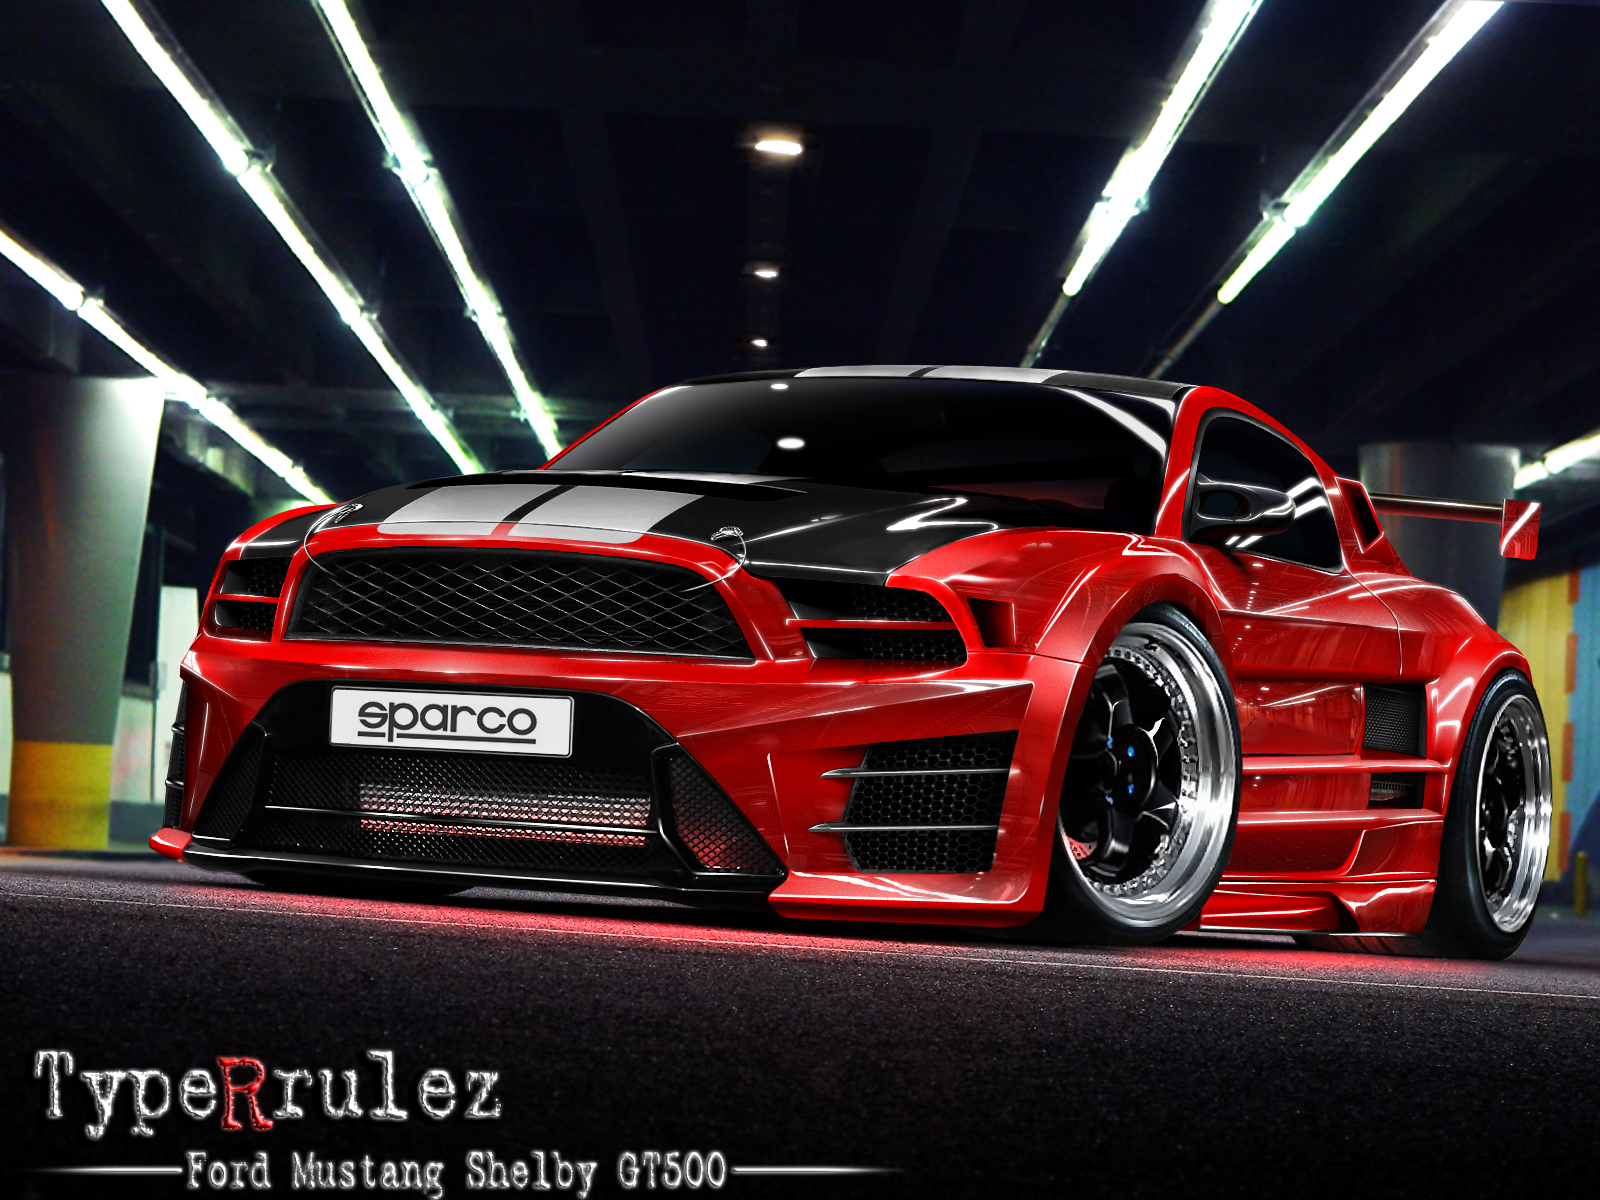 Red And Black Car Wallpapers: Red And Black Mustang Cars 11 Background Wallpaper